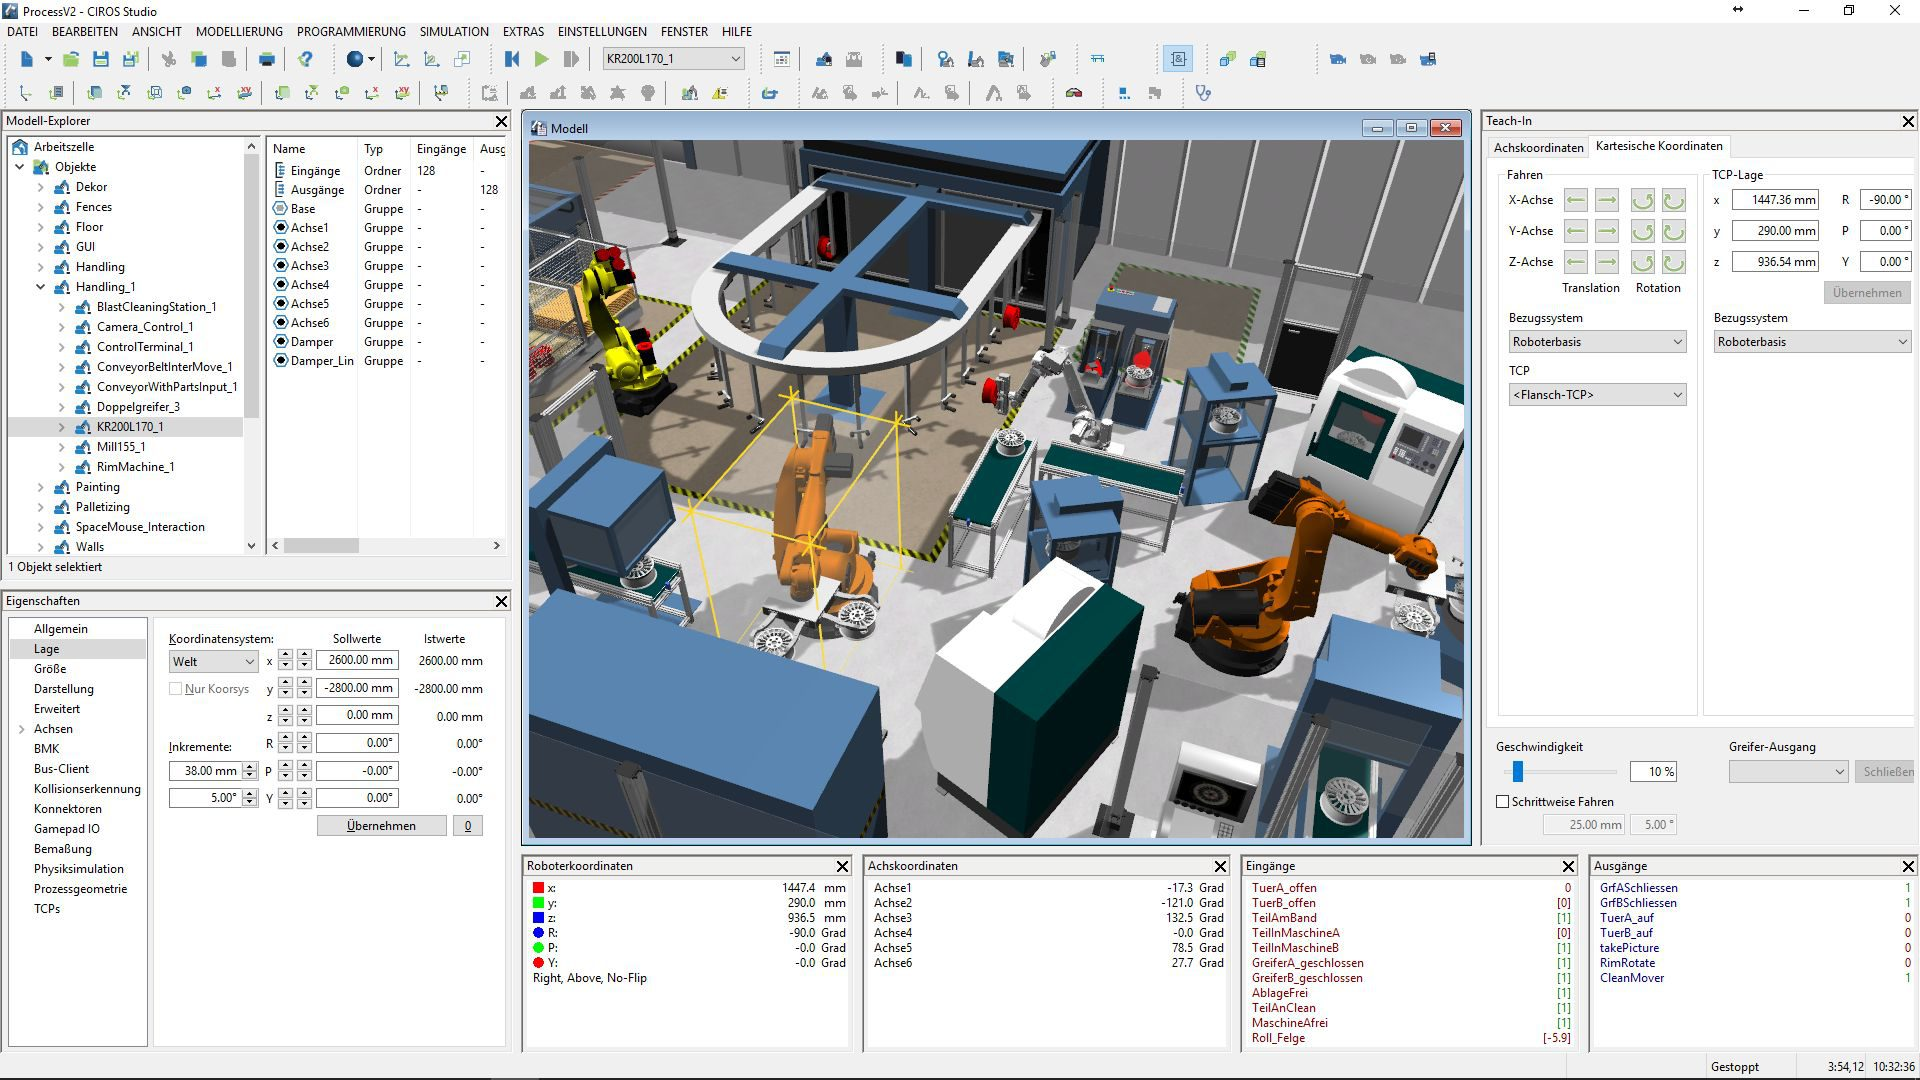 CIROS Studio for 3D Factory Simulation - VEROSIM Solutions